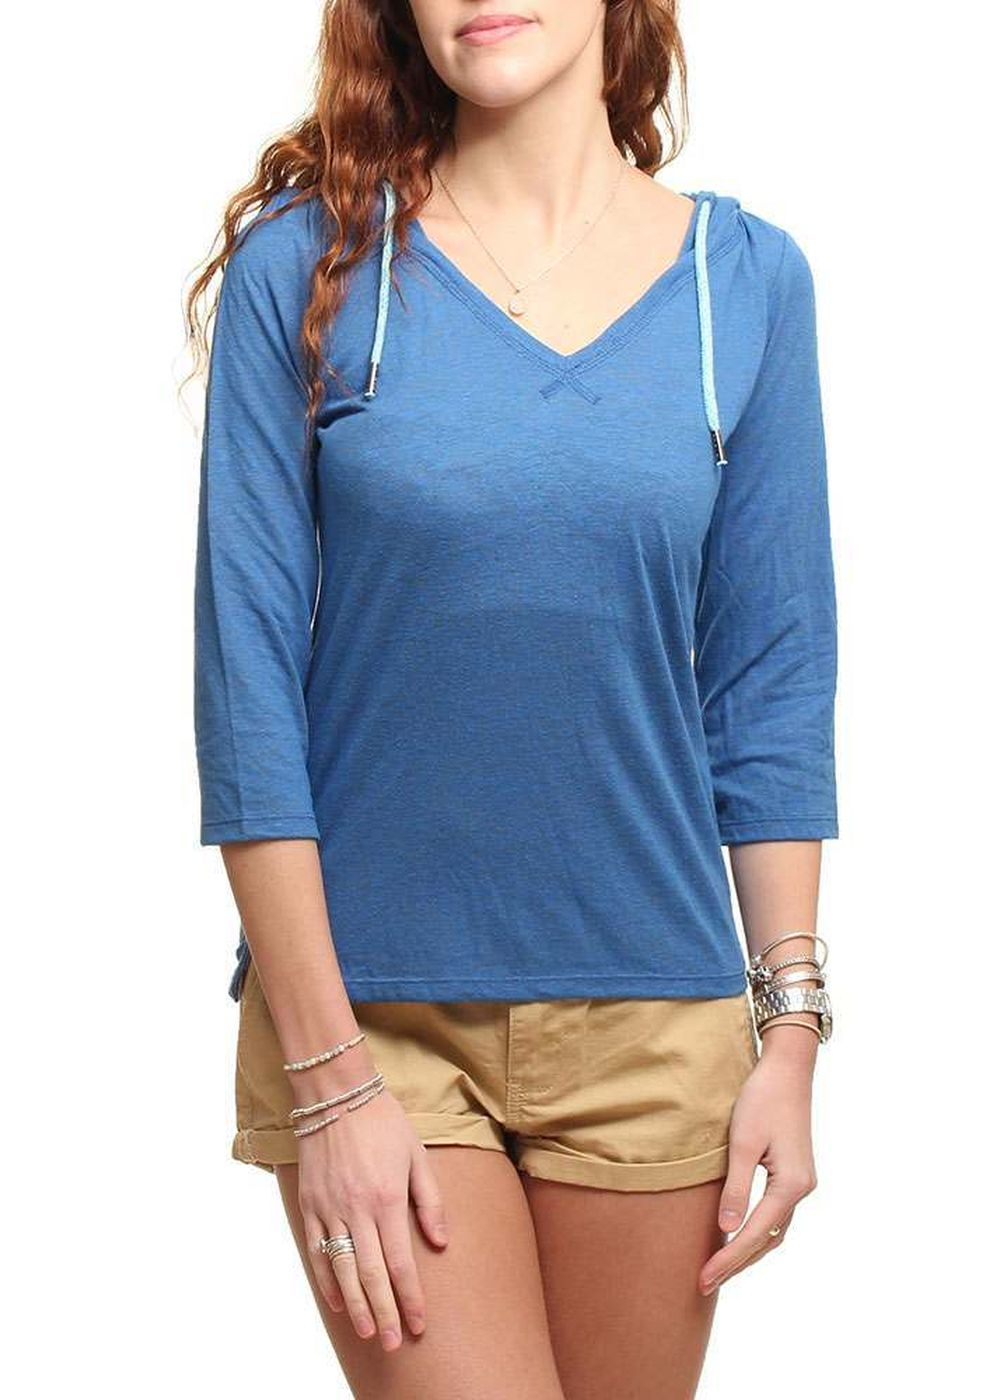 oneill-marly-ls-top-palace-blue